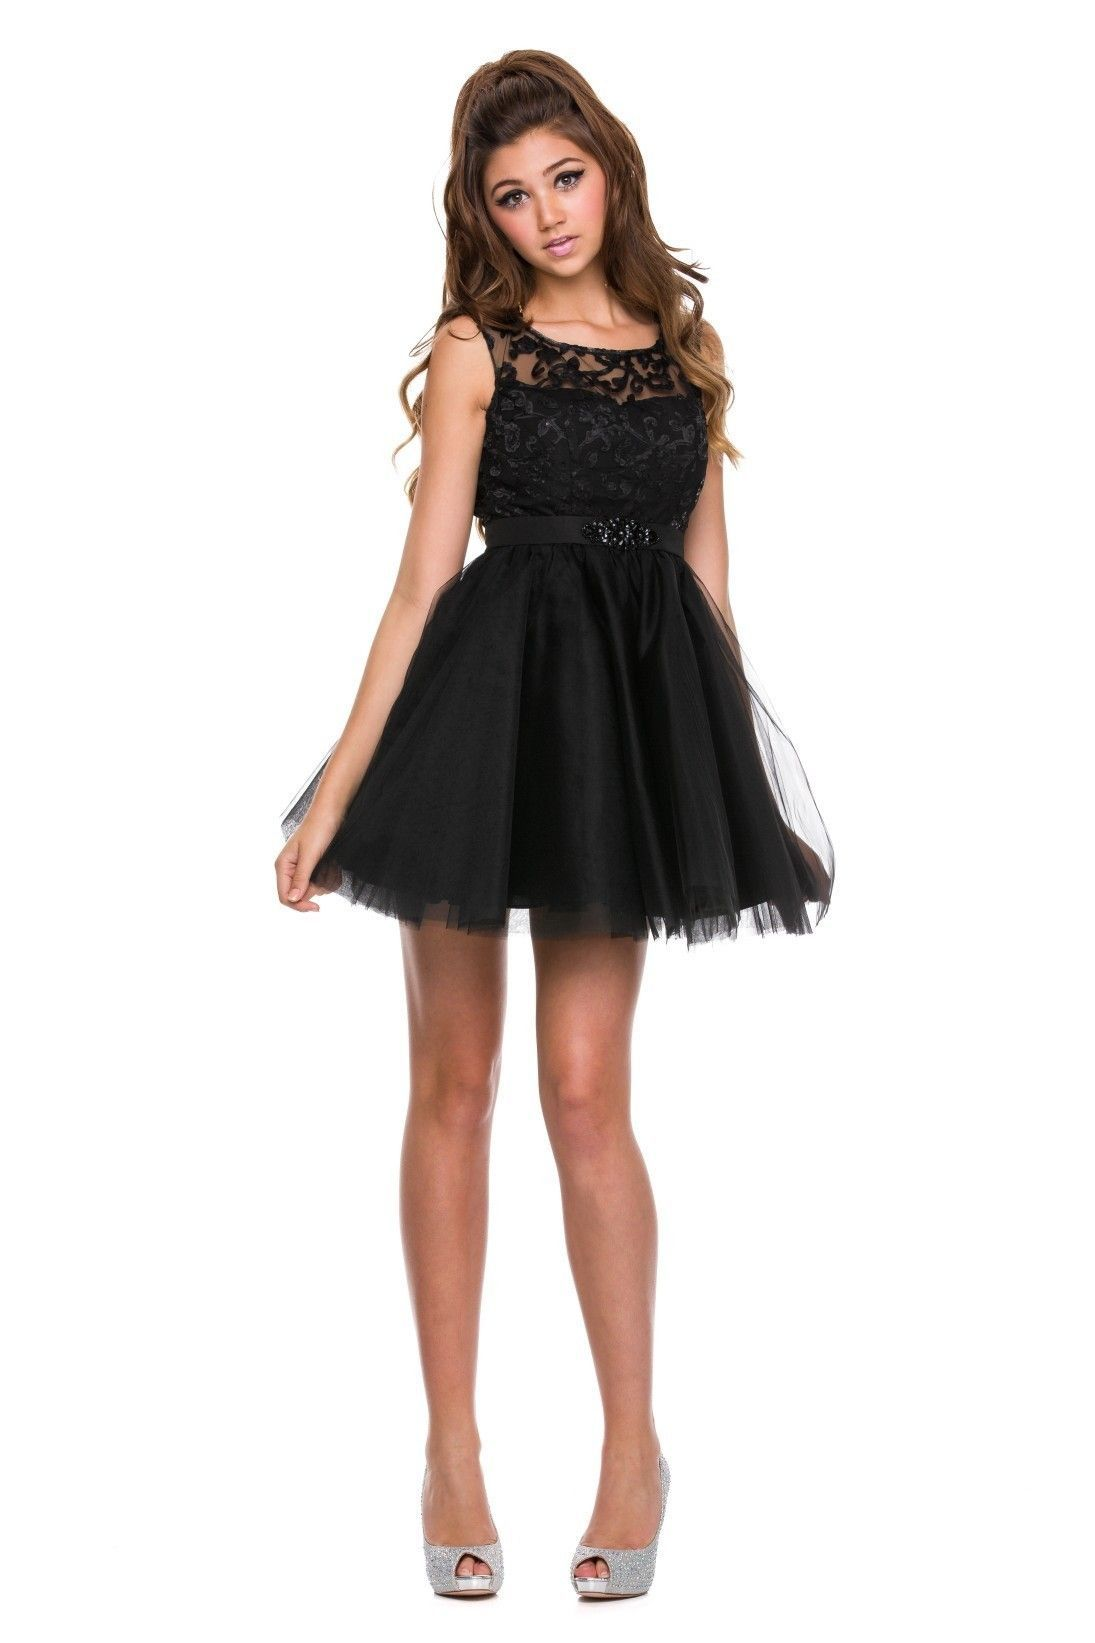 Short Black Prom Dress With Cute Style #12 | Alo Style | Style ...